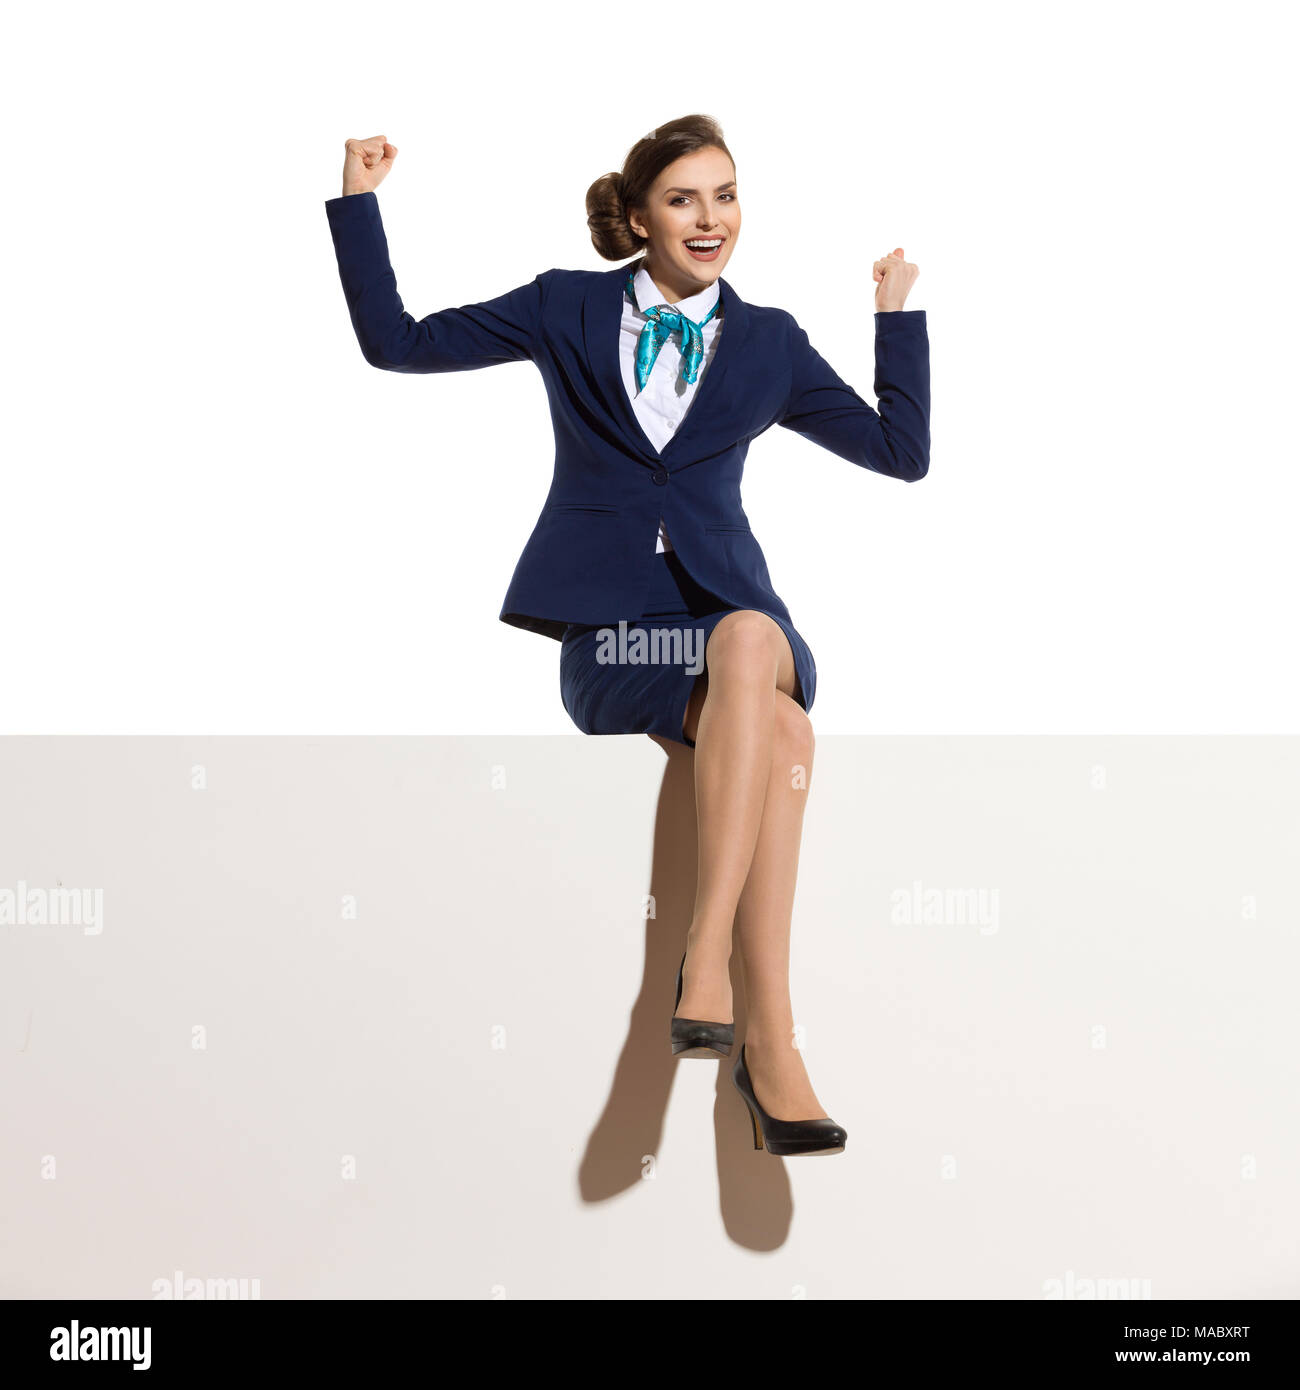 Businesswoman in blue suit and black high heels is sitting on a top with legs crossed, flexing muscles, smiling and looking at camera. Full length stu - Stock Image